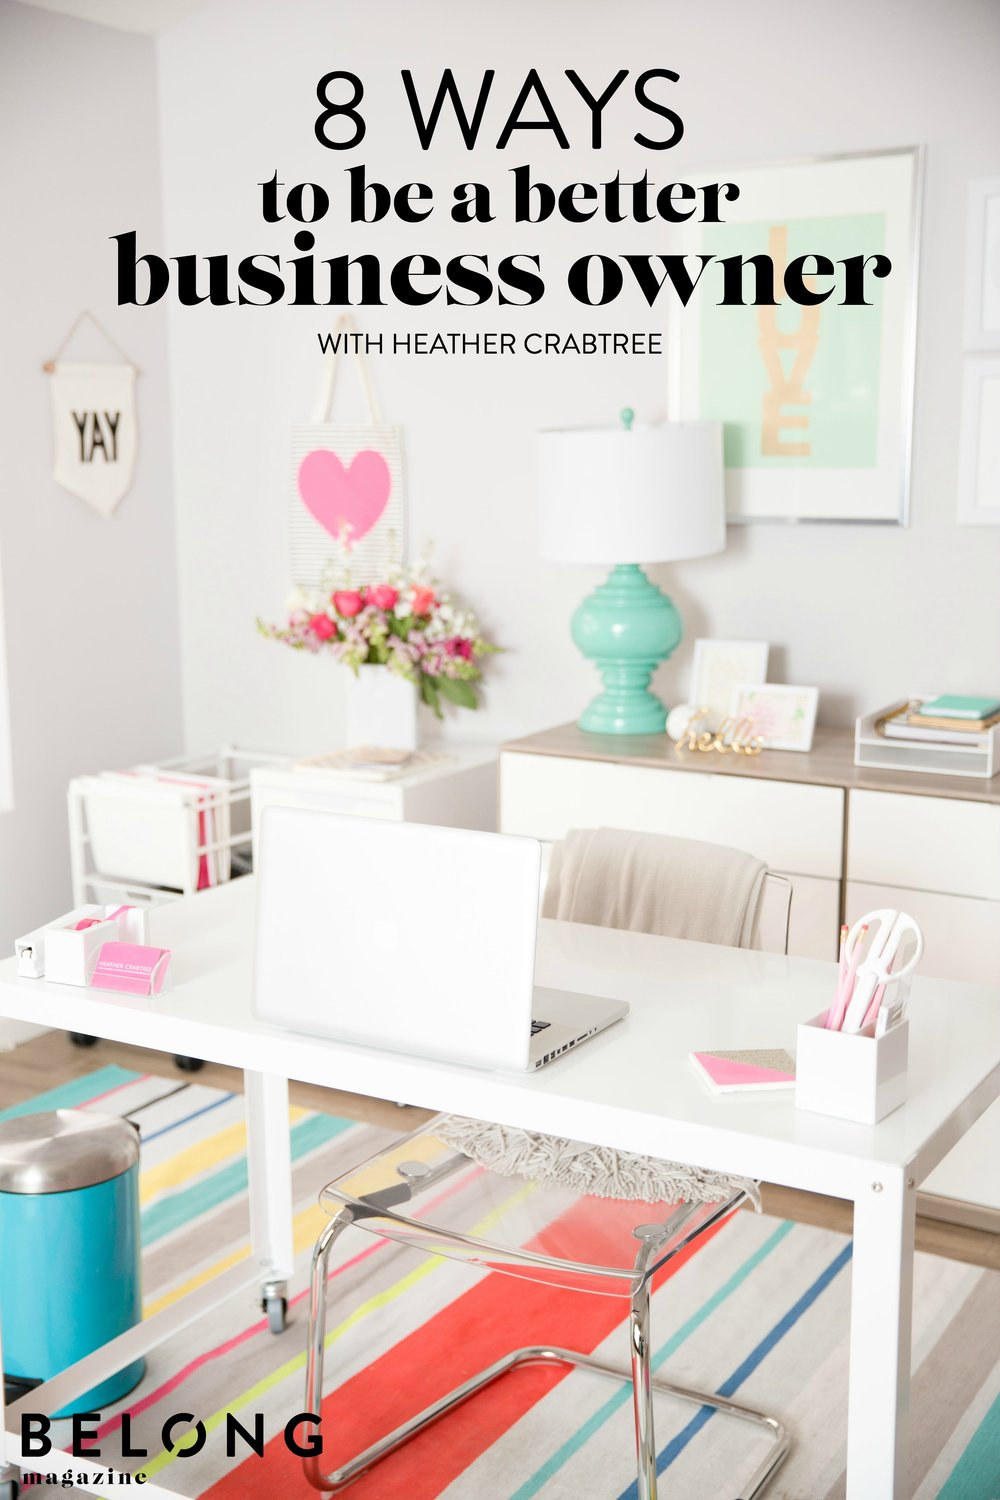 8 ways to be a better business owner by heather crabtree of the savvy community and savvy business owners facebook group as featured in Belong Magazine ISSUE 01